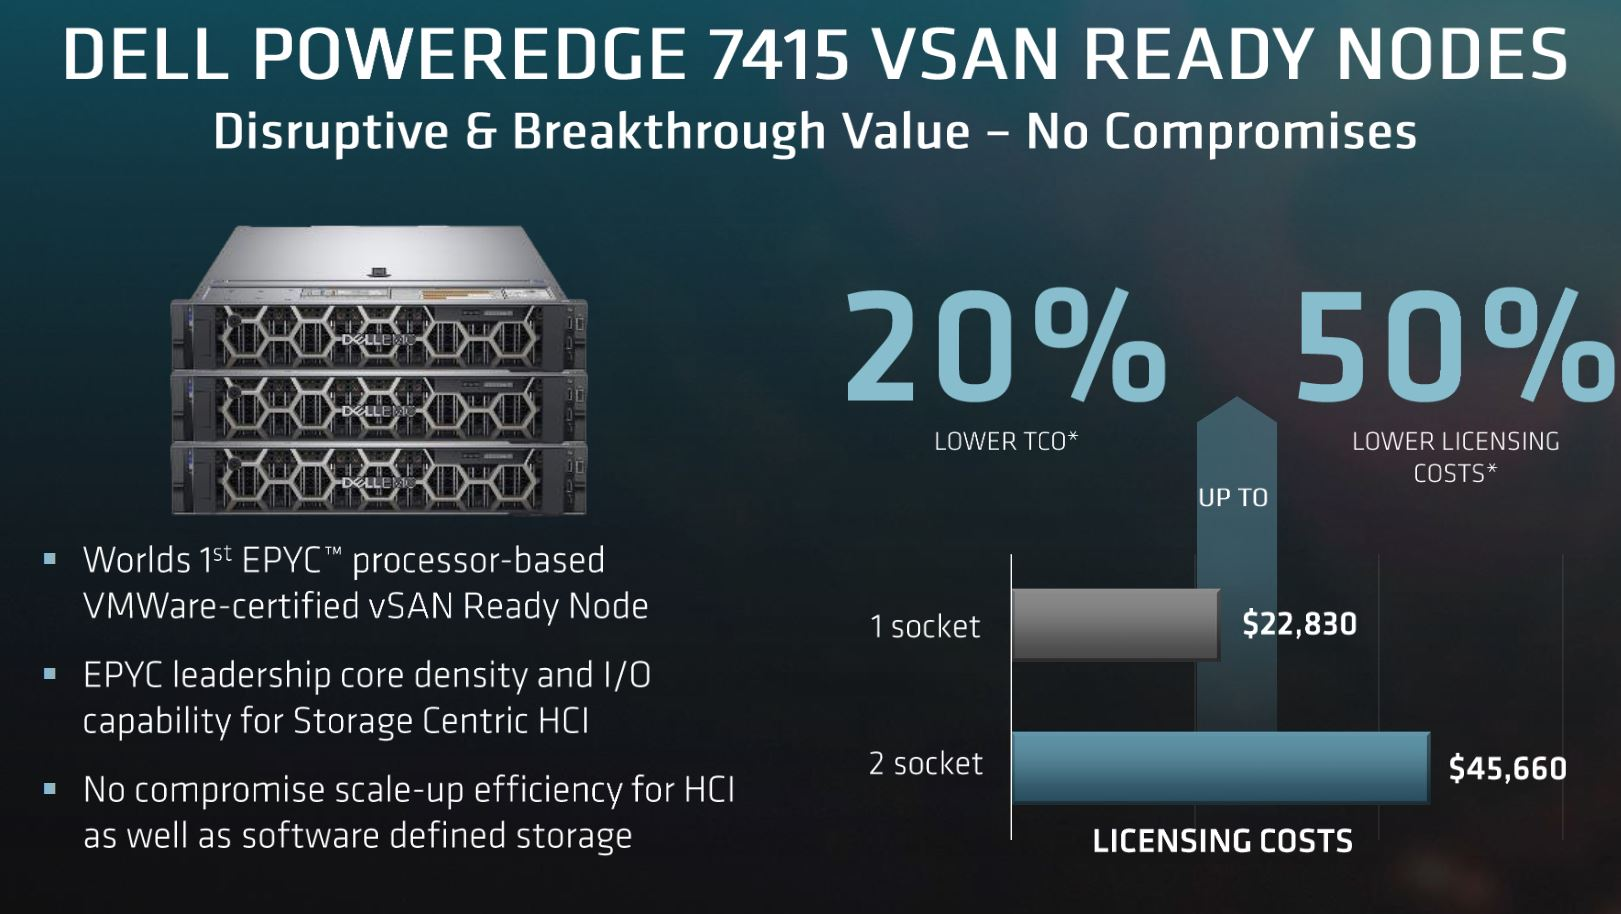 Dell PowerEdge R7415 VSAN Ready Nodes